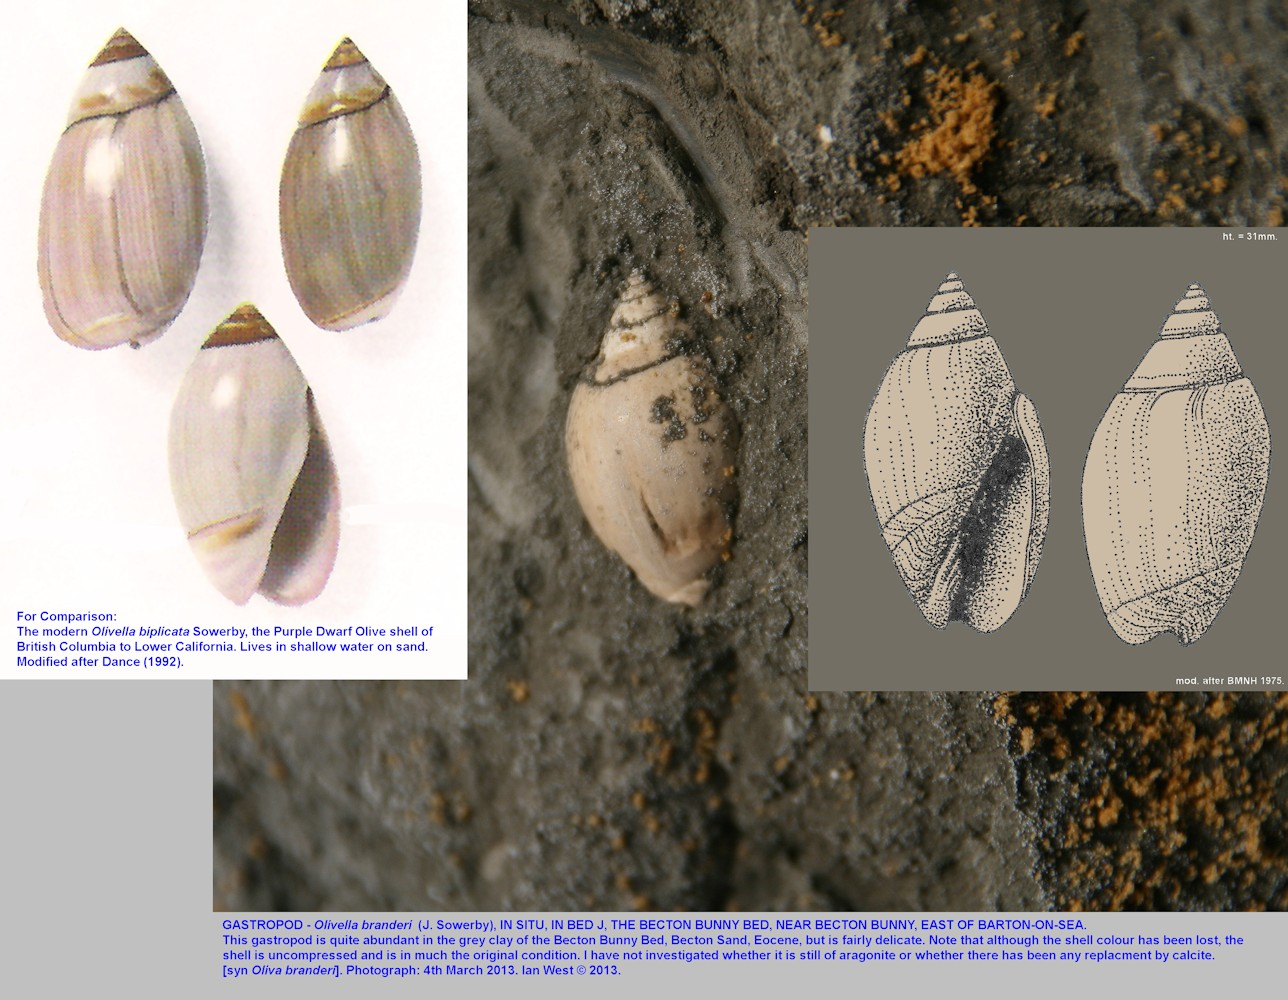 The gastropod, Olivella branderi, in Bed J, the Becton Bunny Bed, east of Barton-on-Sea, Hampshire, 2013